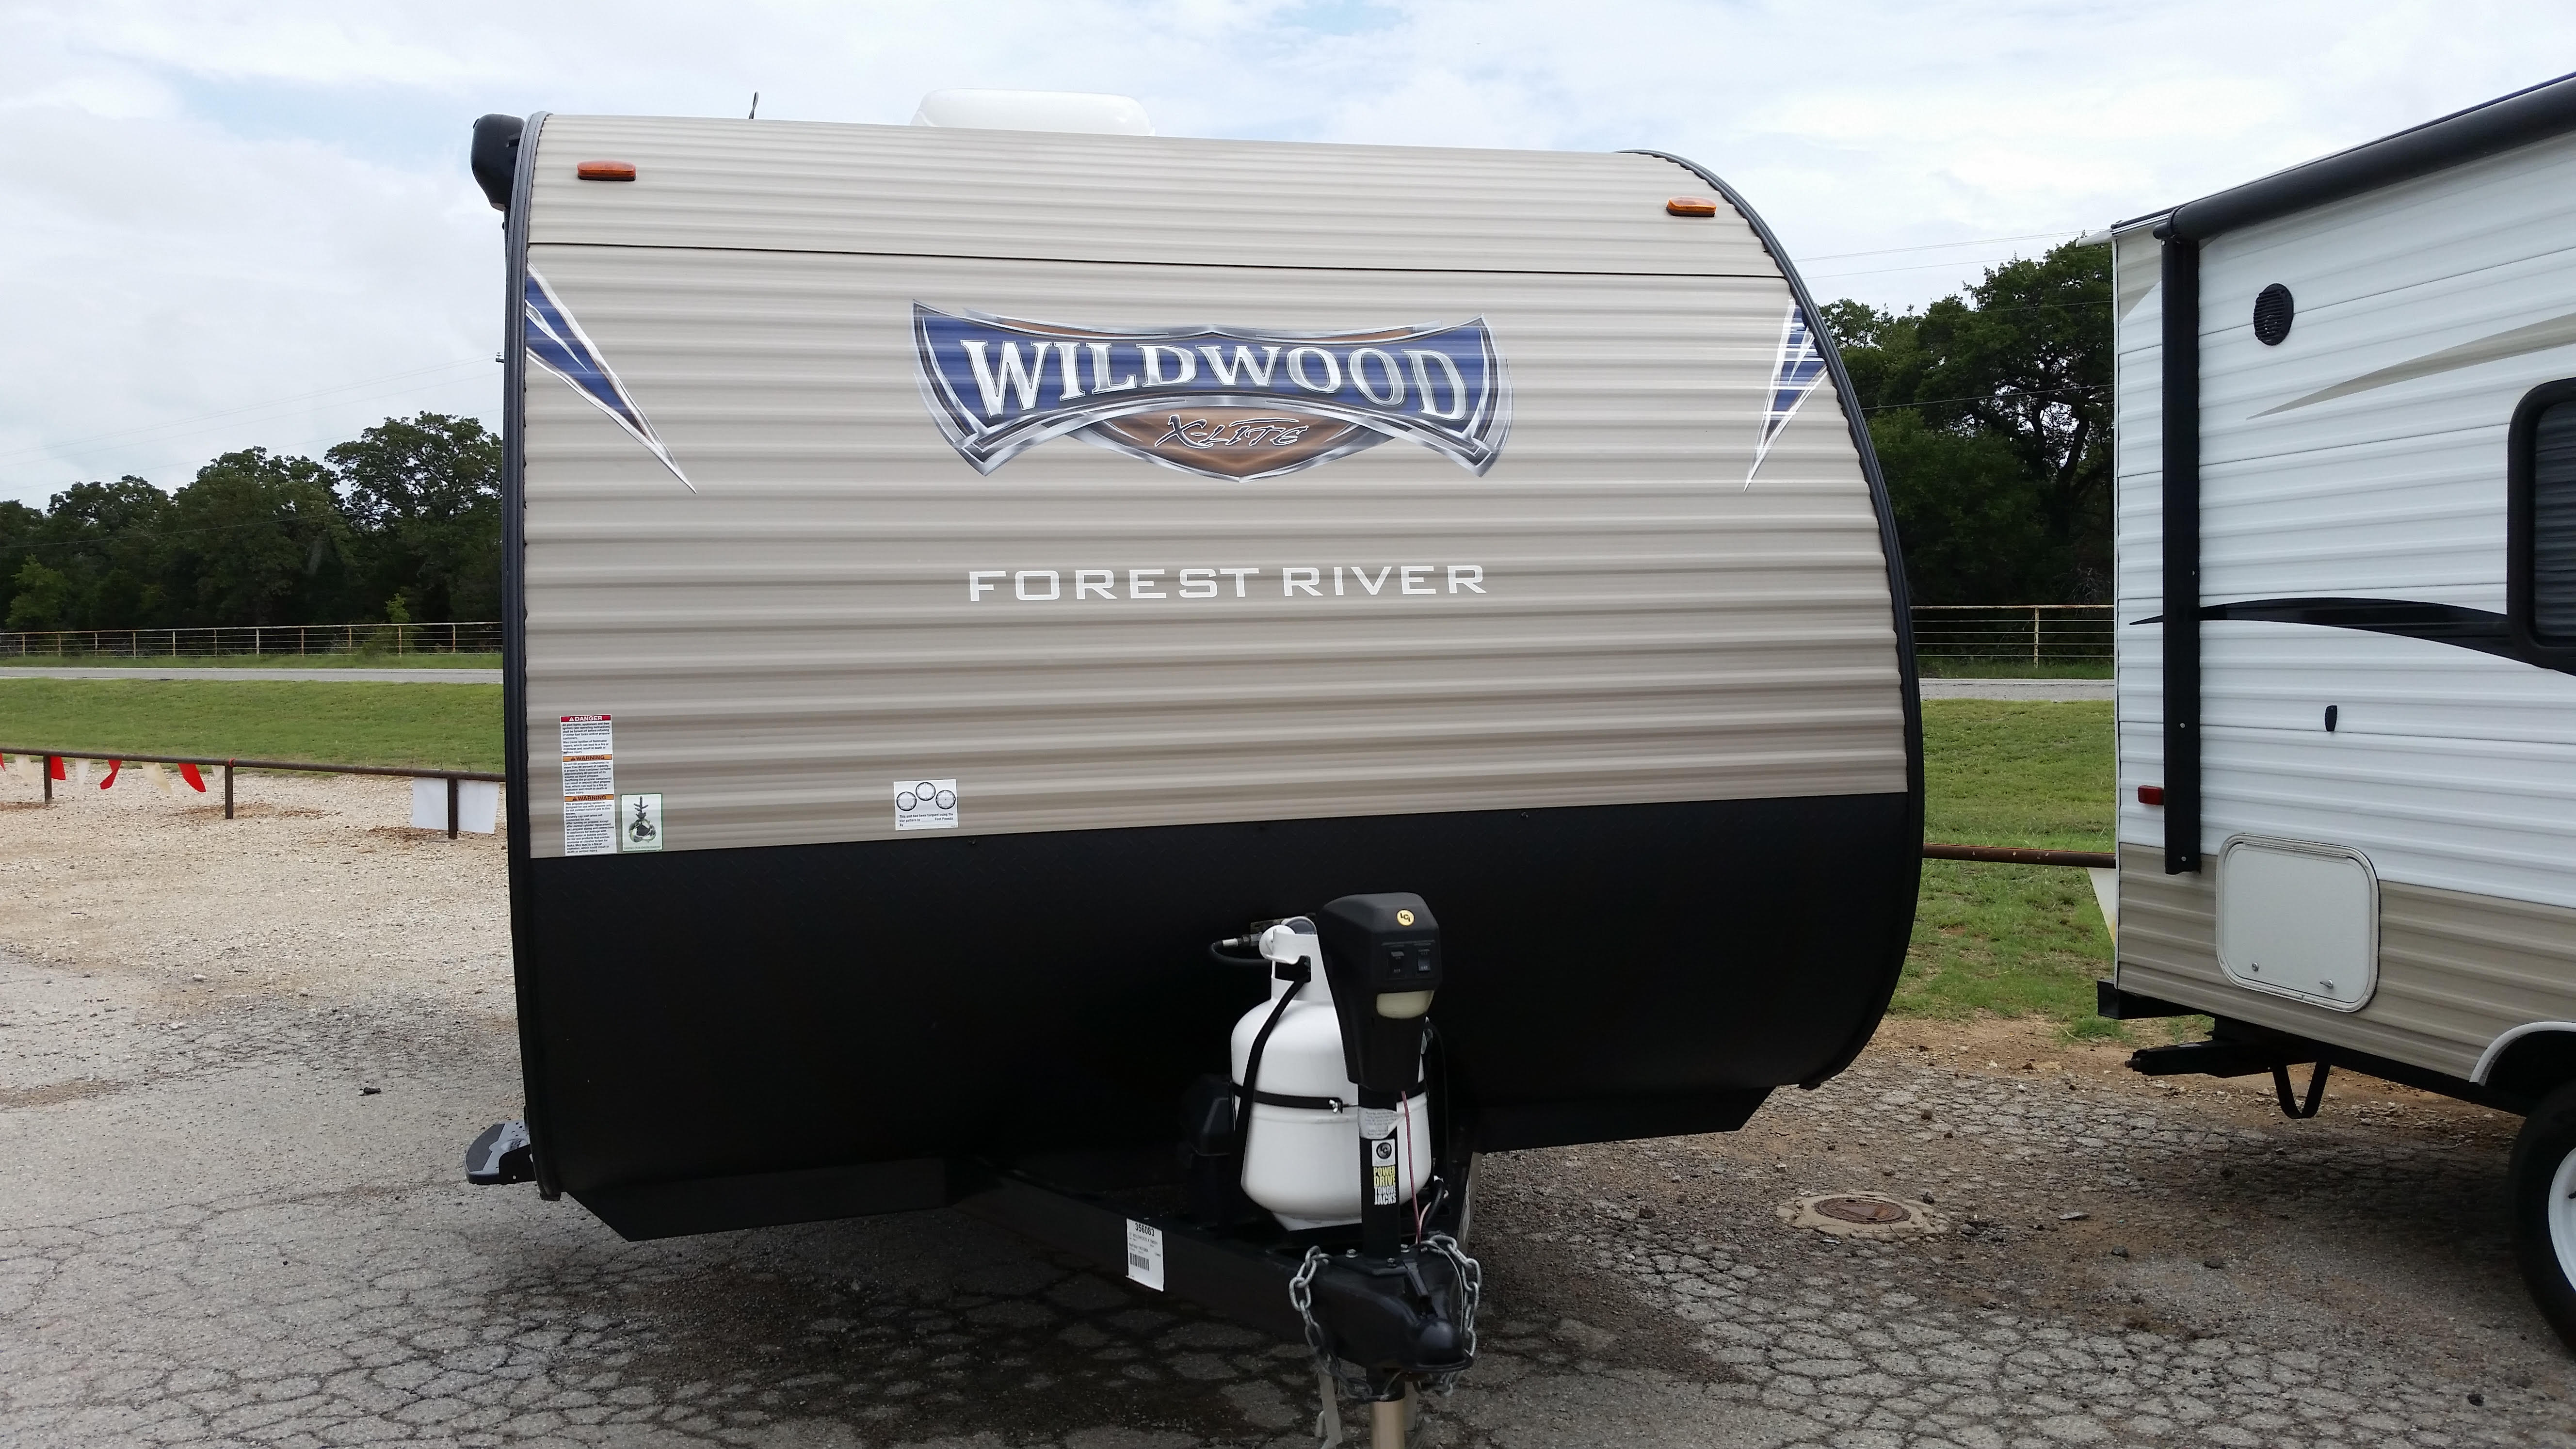 Top 25 Mineral Wells Tx Rv Rentals And Motorhome Outdoorsy 1993 Dutchman Camper 12 Volt Wiring Diagram